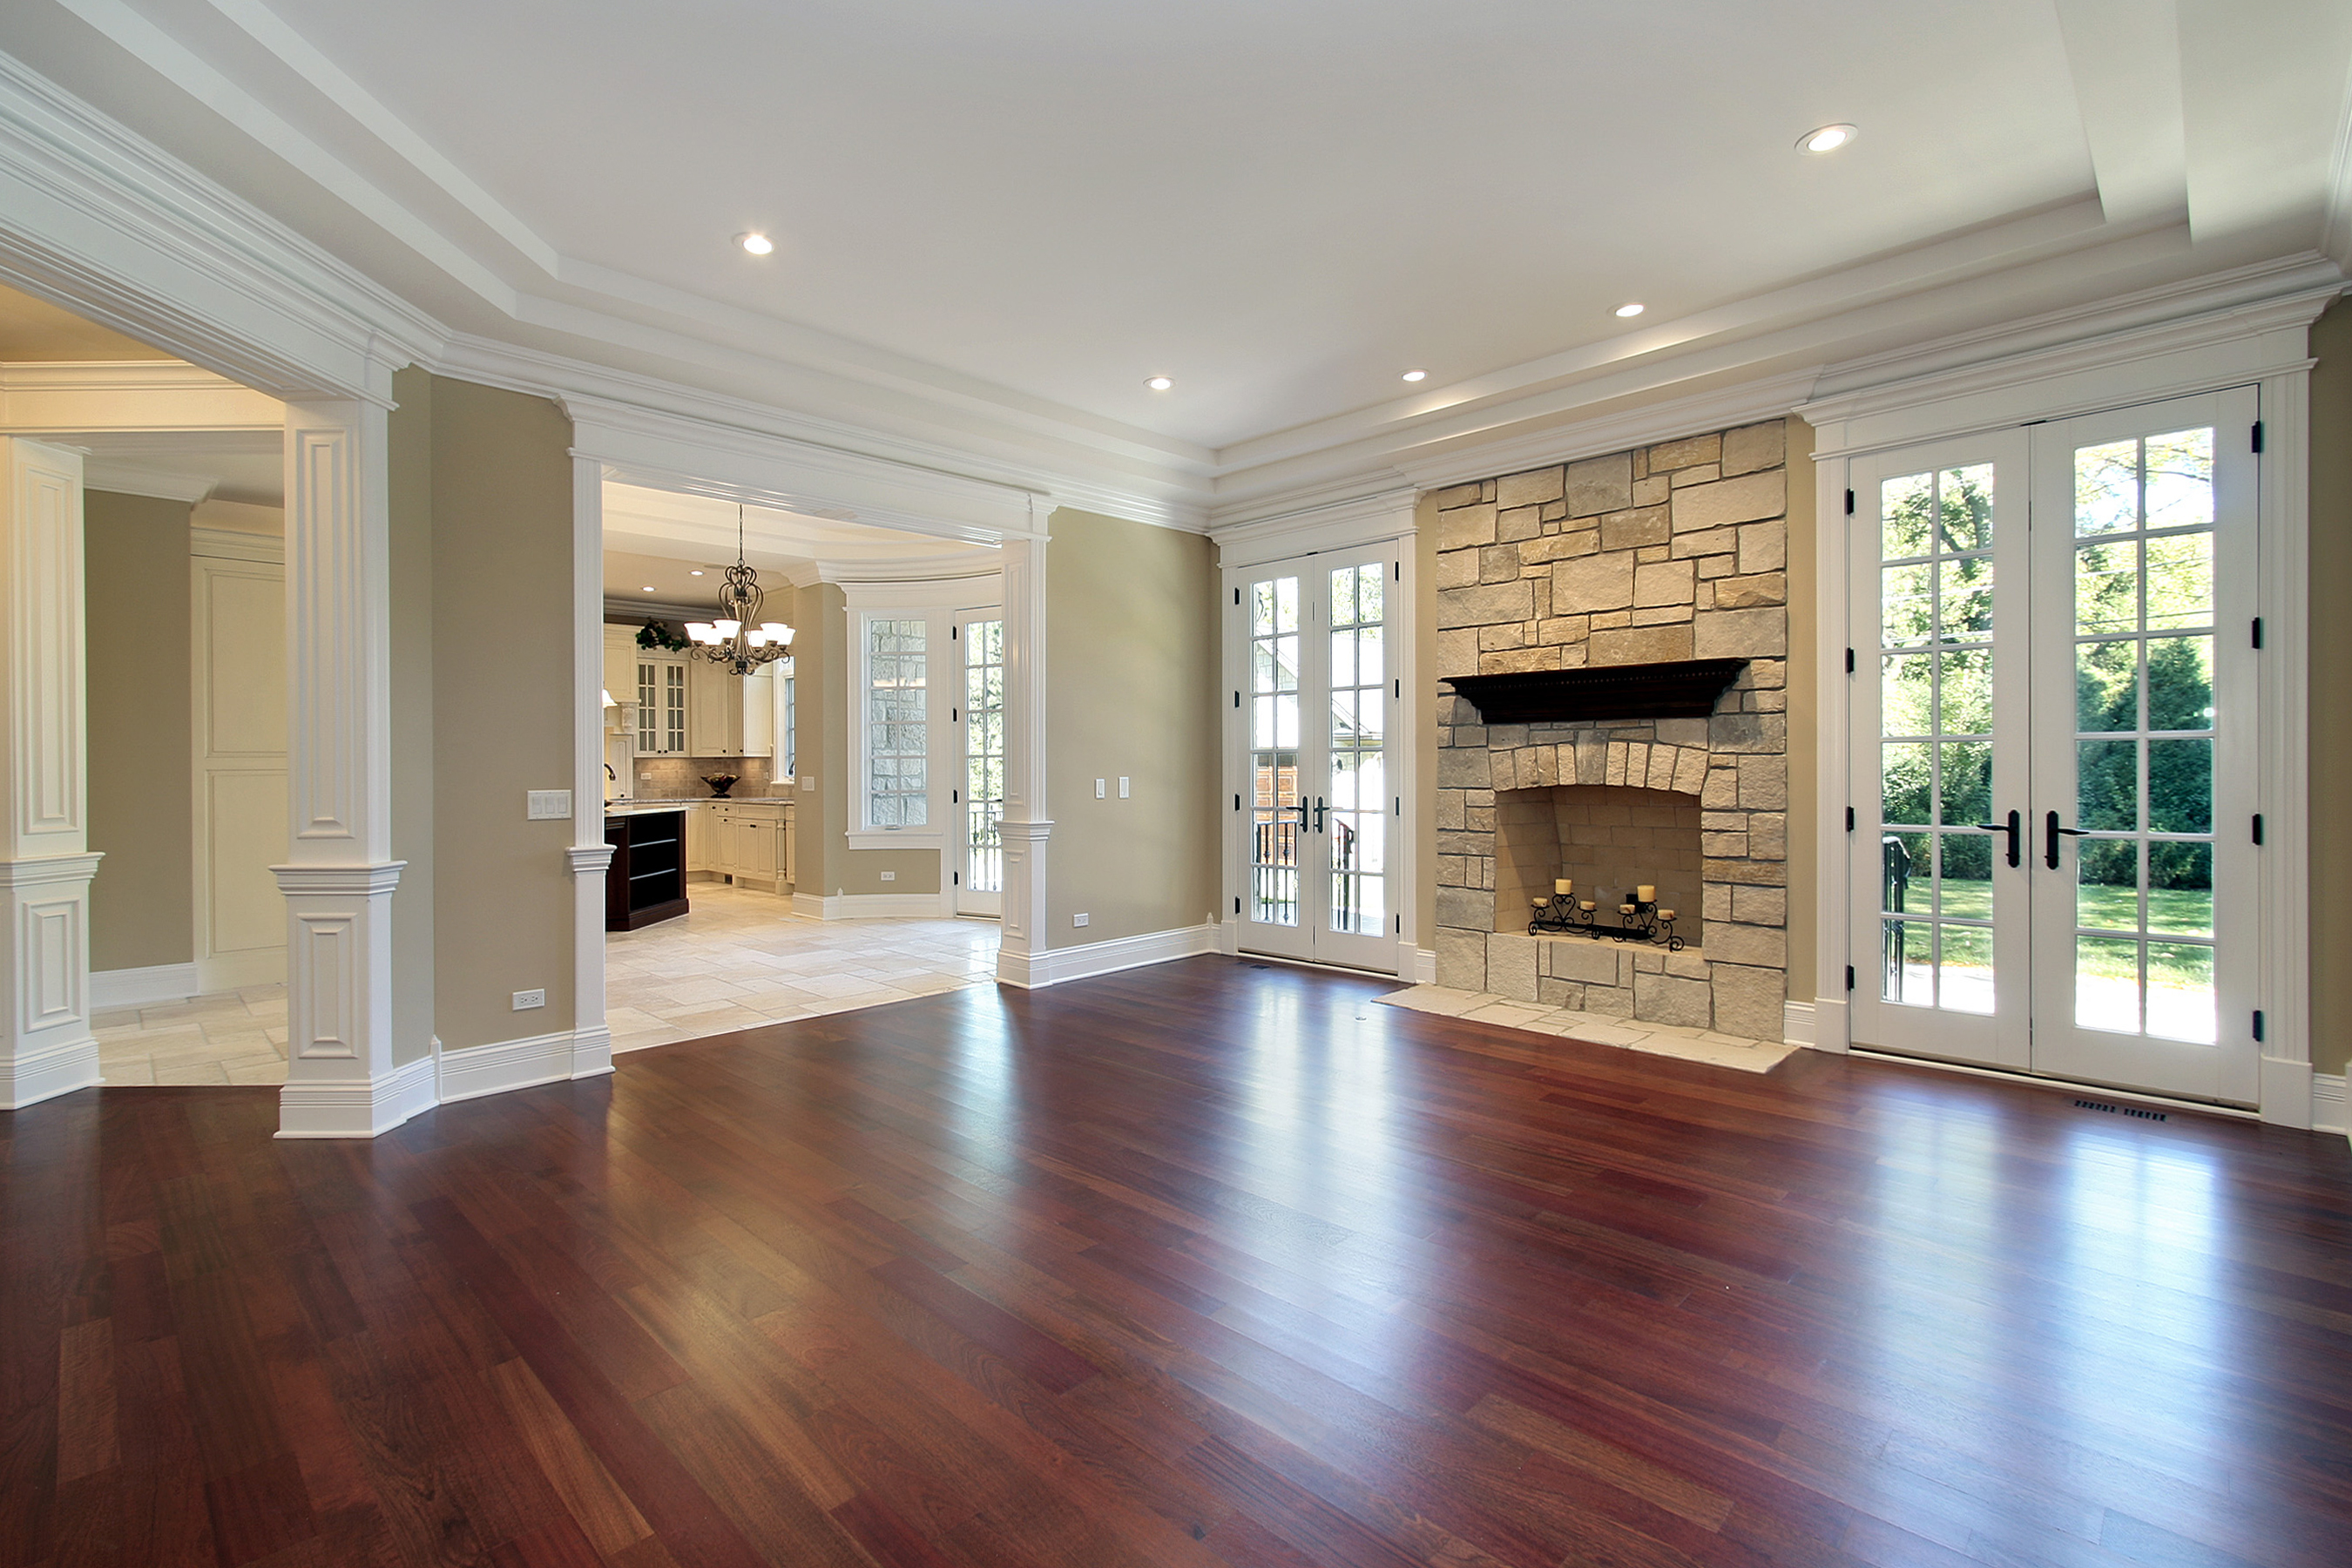 Flooring In House : Deciding on modular home floor plans statewide homes